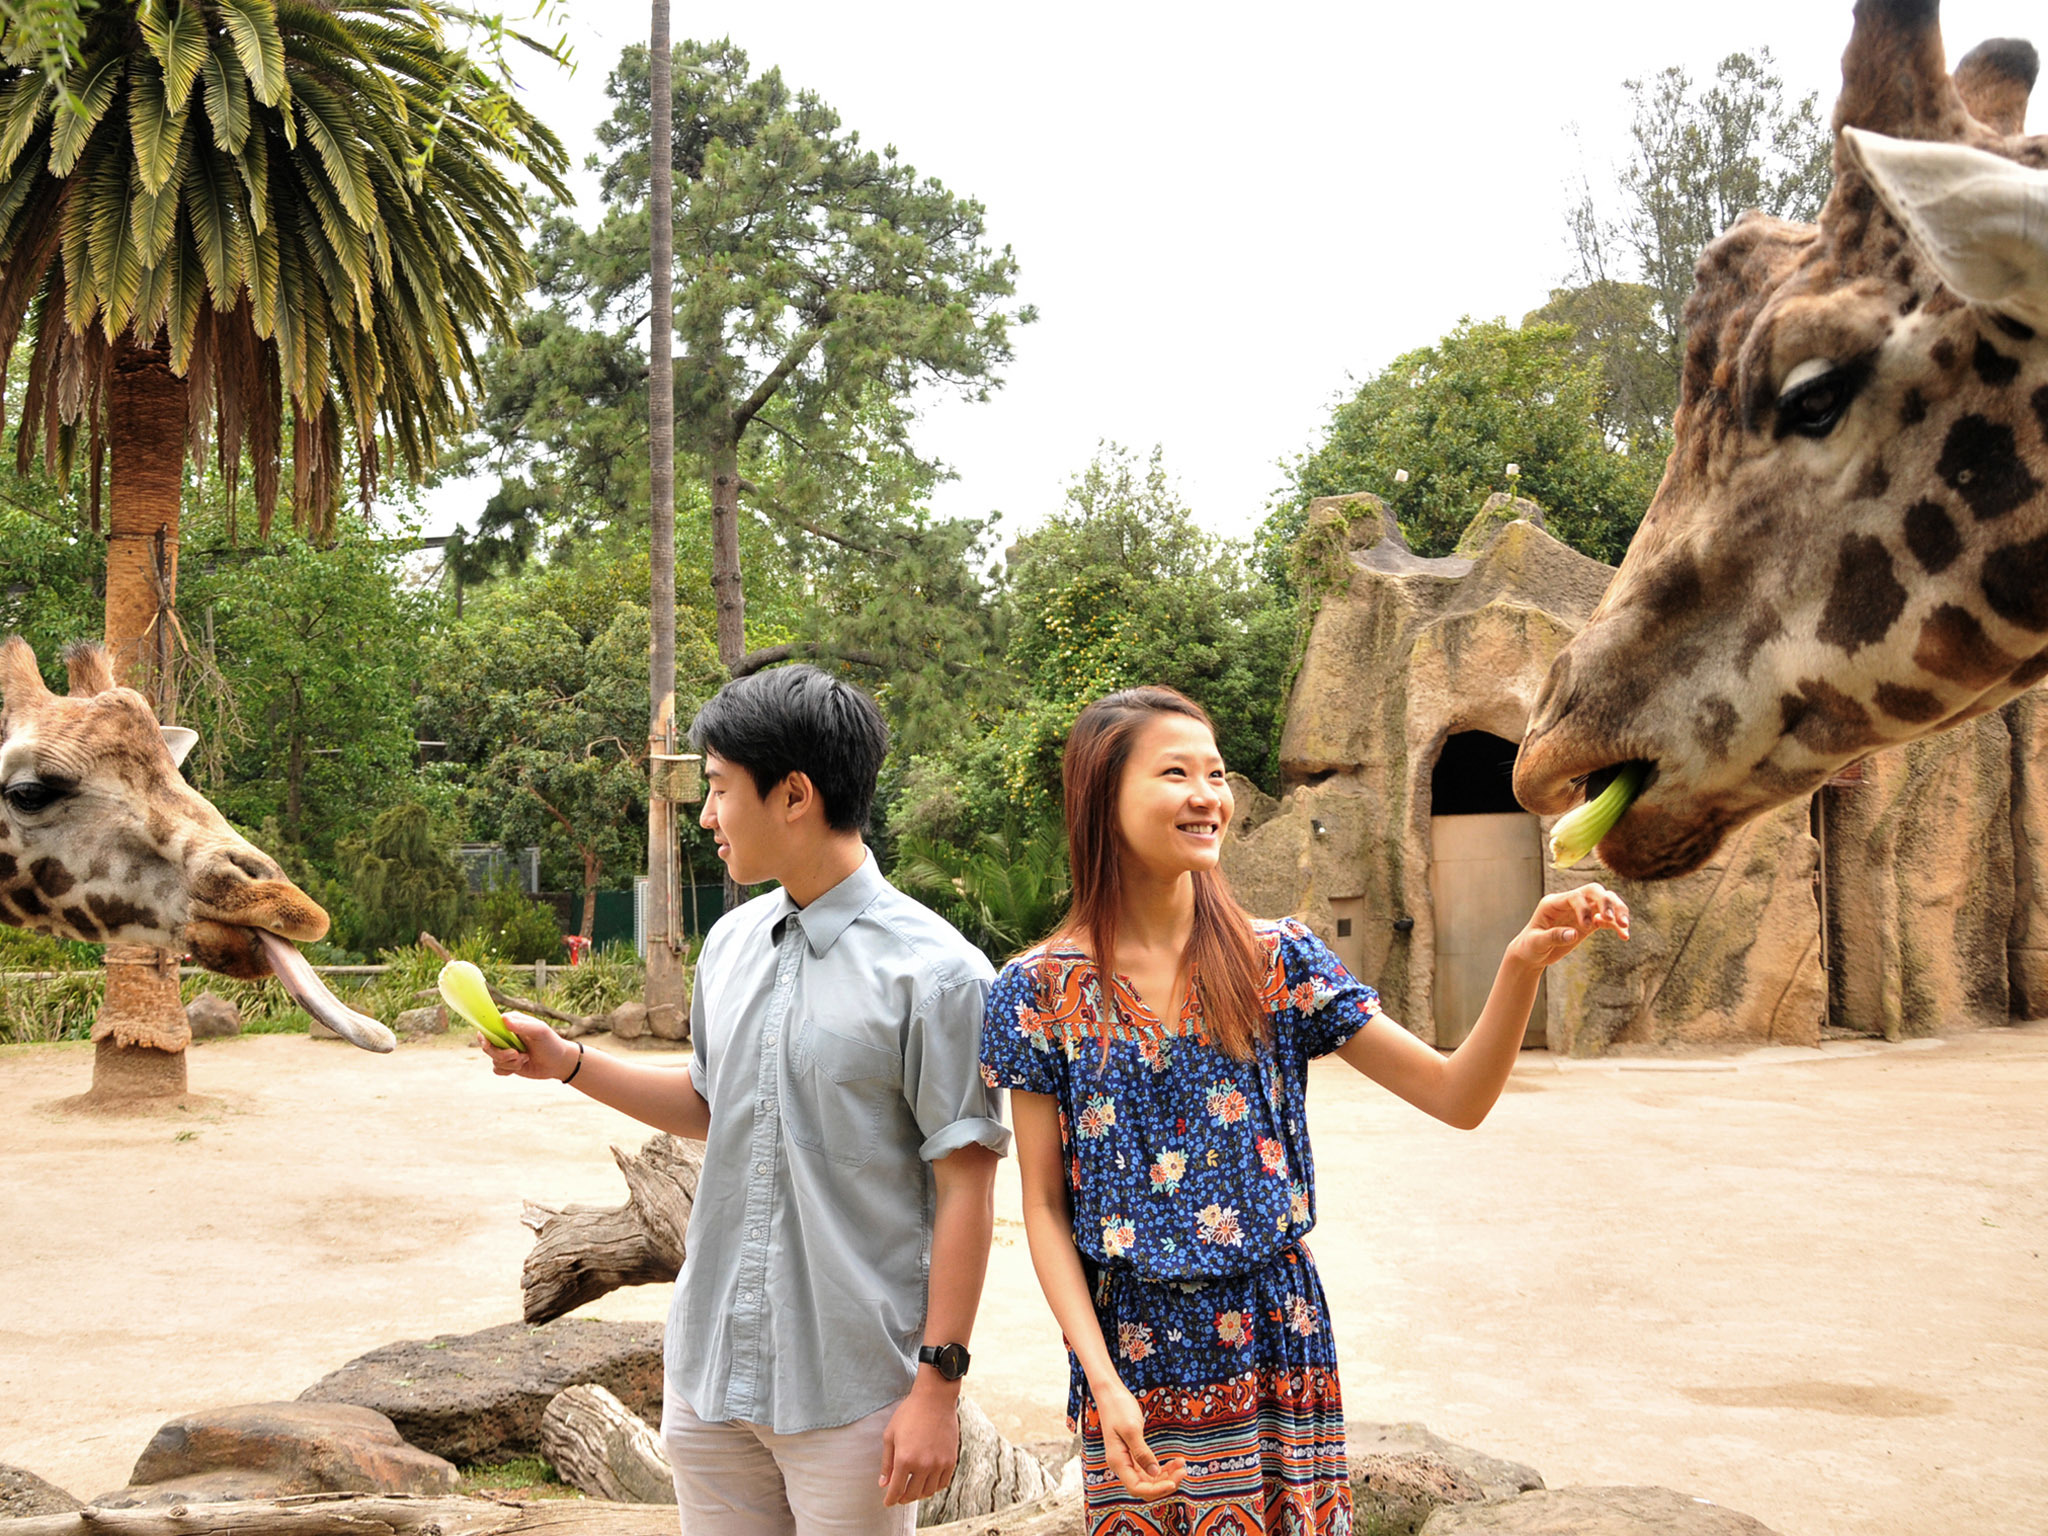 Pose for a portrait with a giraffe